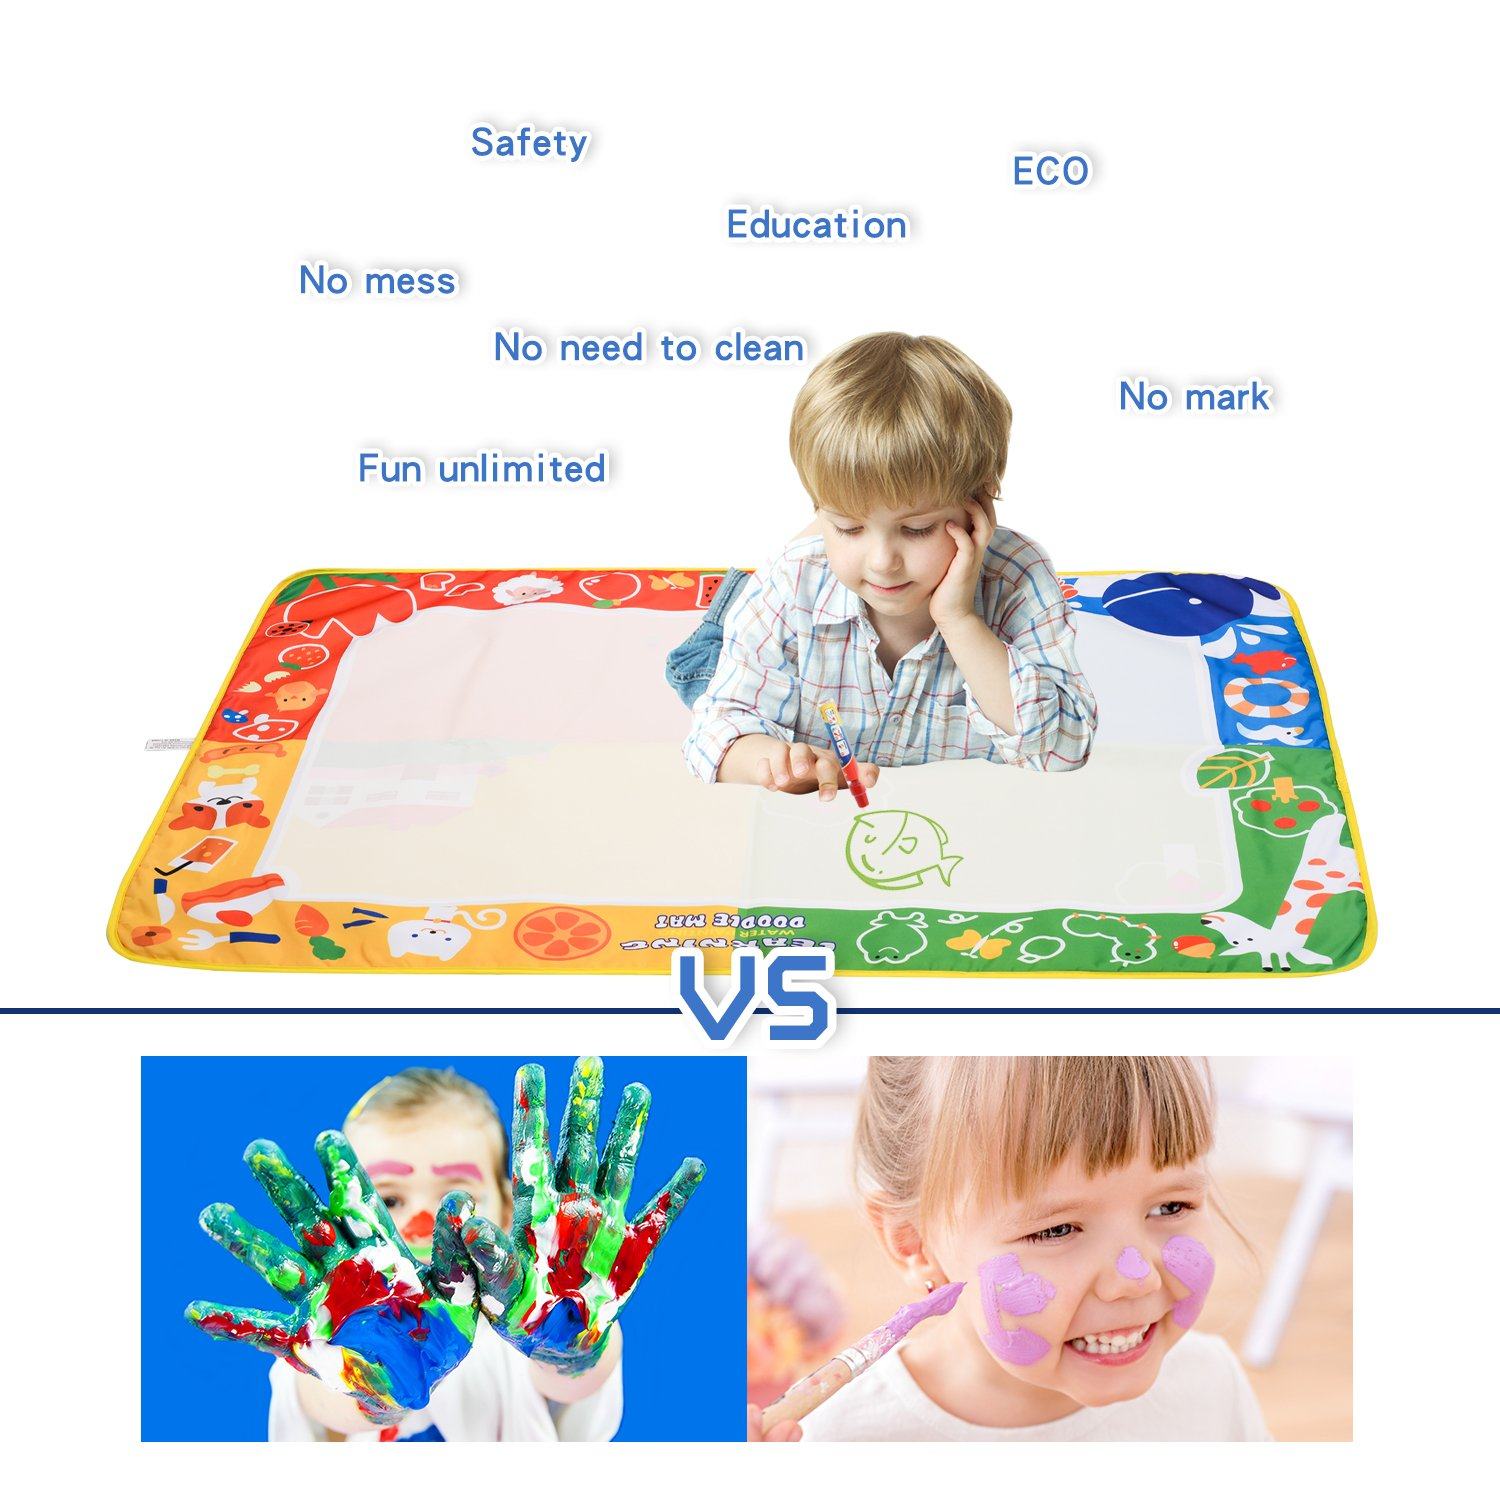 citymama Drawing Mat Doodle Magic mat water Drawing & writing Mat painting board 4 Colors with 3 Magic Drawing Pens and 15 Molds Kids Educational Toy Mat Gift for Children XL Size 40'' x 28'' by citymama (Image #5)